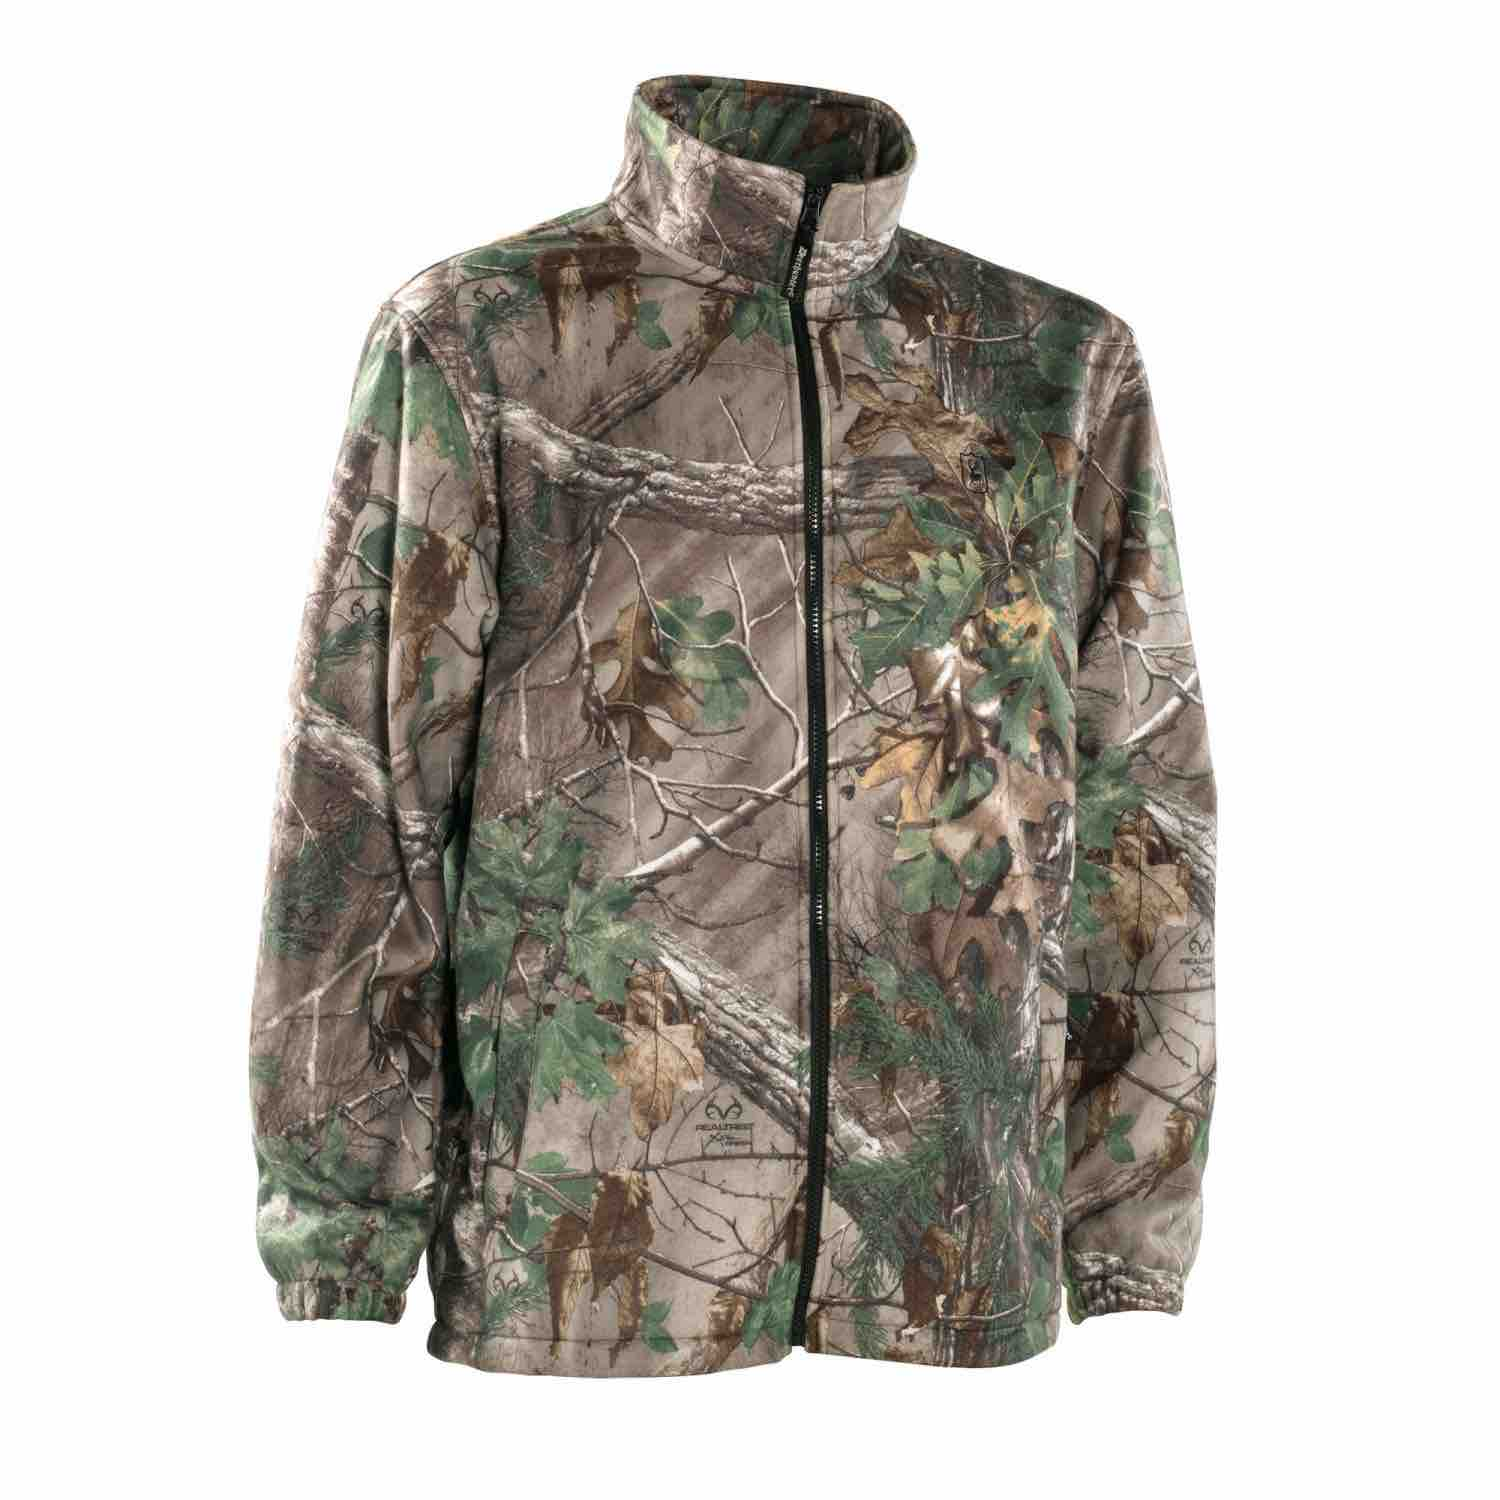 http://myshop.s3-external-3.amazonaws.com/shop4795900.pictures.DH5598-1_deer_hunter_jacht_camo_real_tree_xtra_camo.jpg